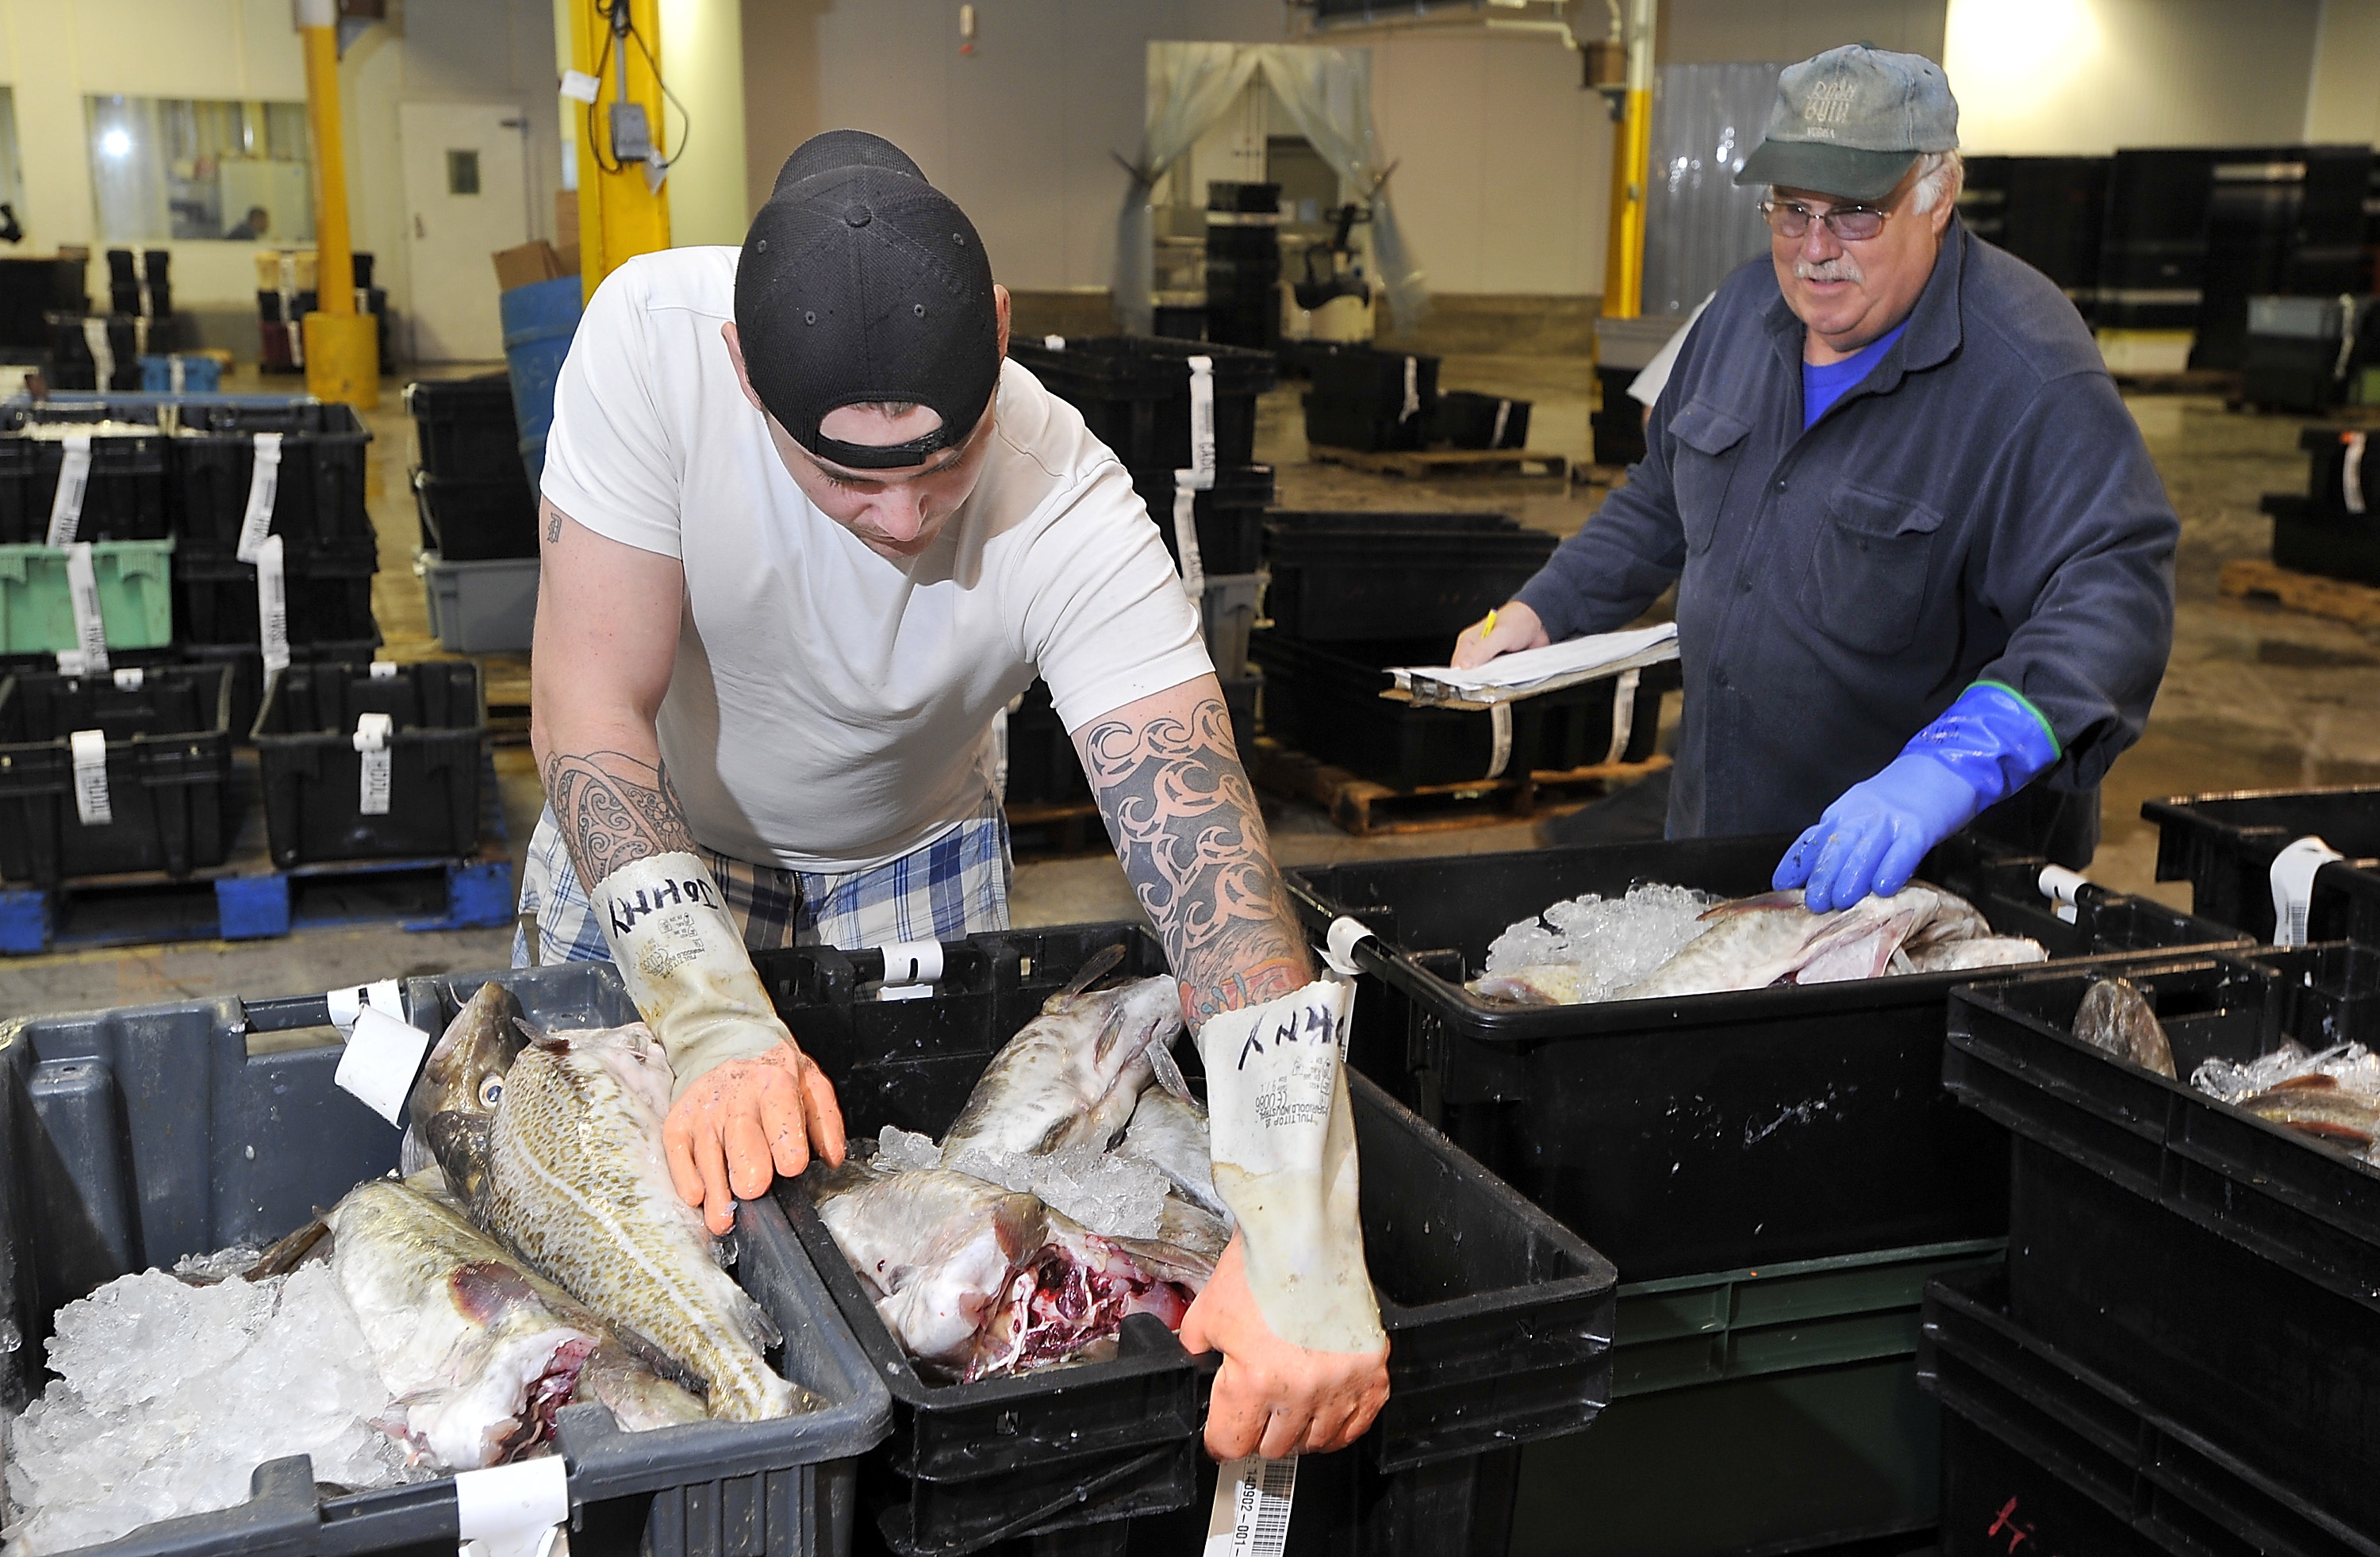 Scientists, fishermen at odds on cod stock in Gulf of Maine